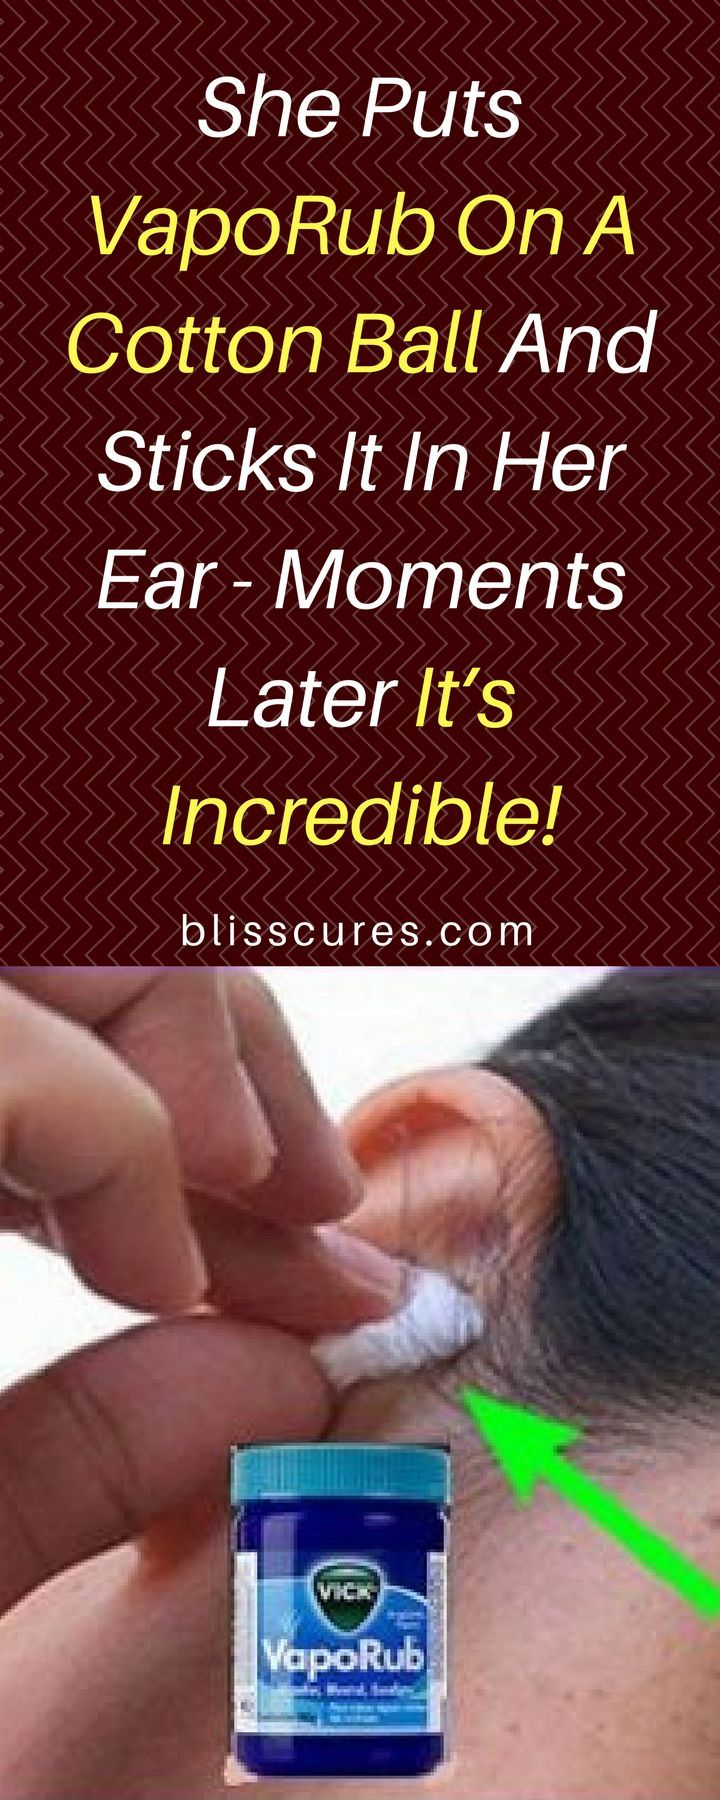 She Puts VapoRub On A Cotton Ball And Sticks It In Her Ear - Moments Later It's Incredible!